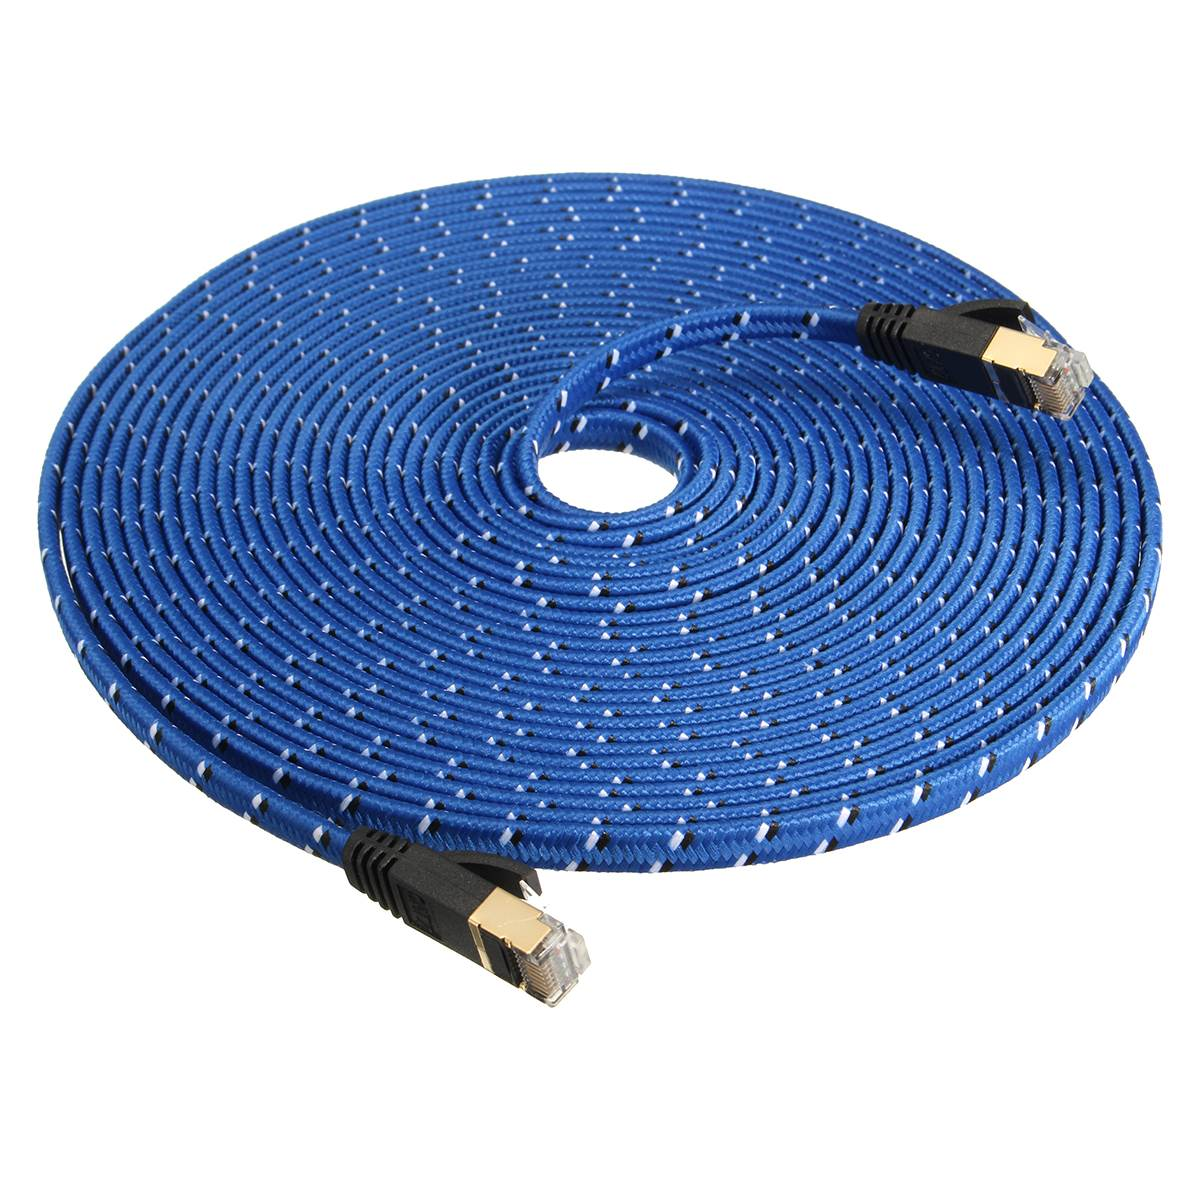 Factory Price CAT 7 1.0M-10M Cable STP Flat Gigabit Ethernet Network Cable RJ45 Patch LAN Cord for PC Laptop Super High Speed factory price 50cm cat 7 10 gigabit ethernet cable modem router rj45 for lan network au4 drop shipping drop shipping